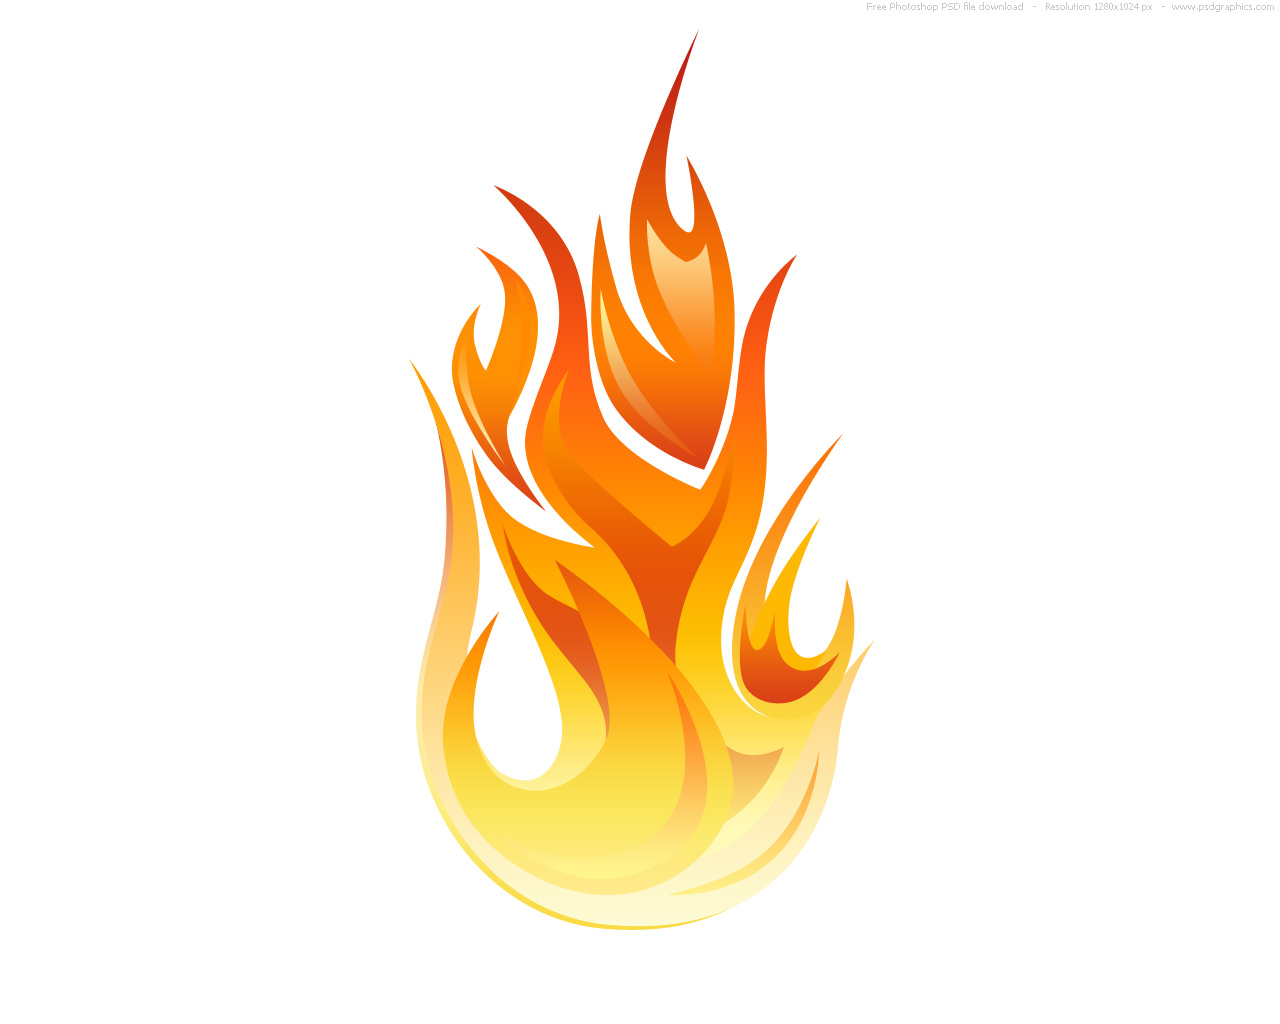 Flames clipart #2, Download drawings